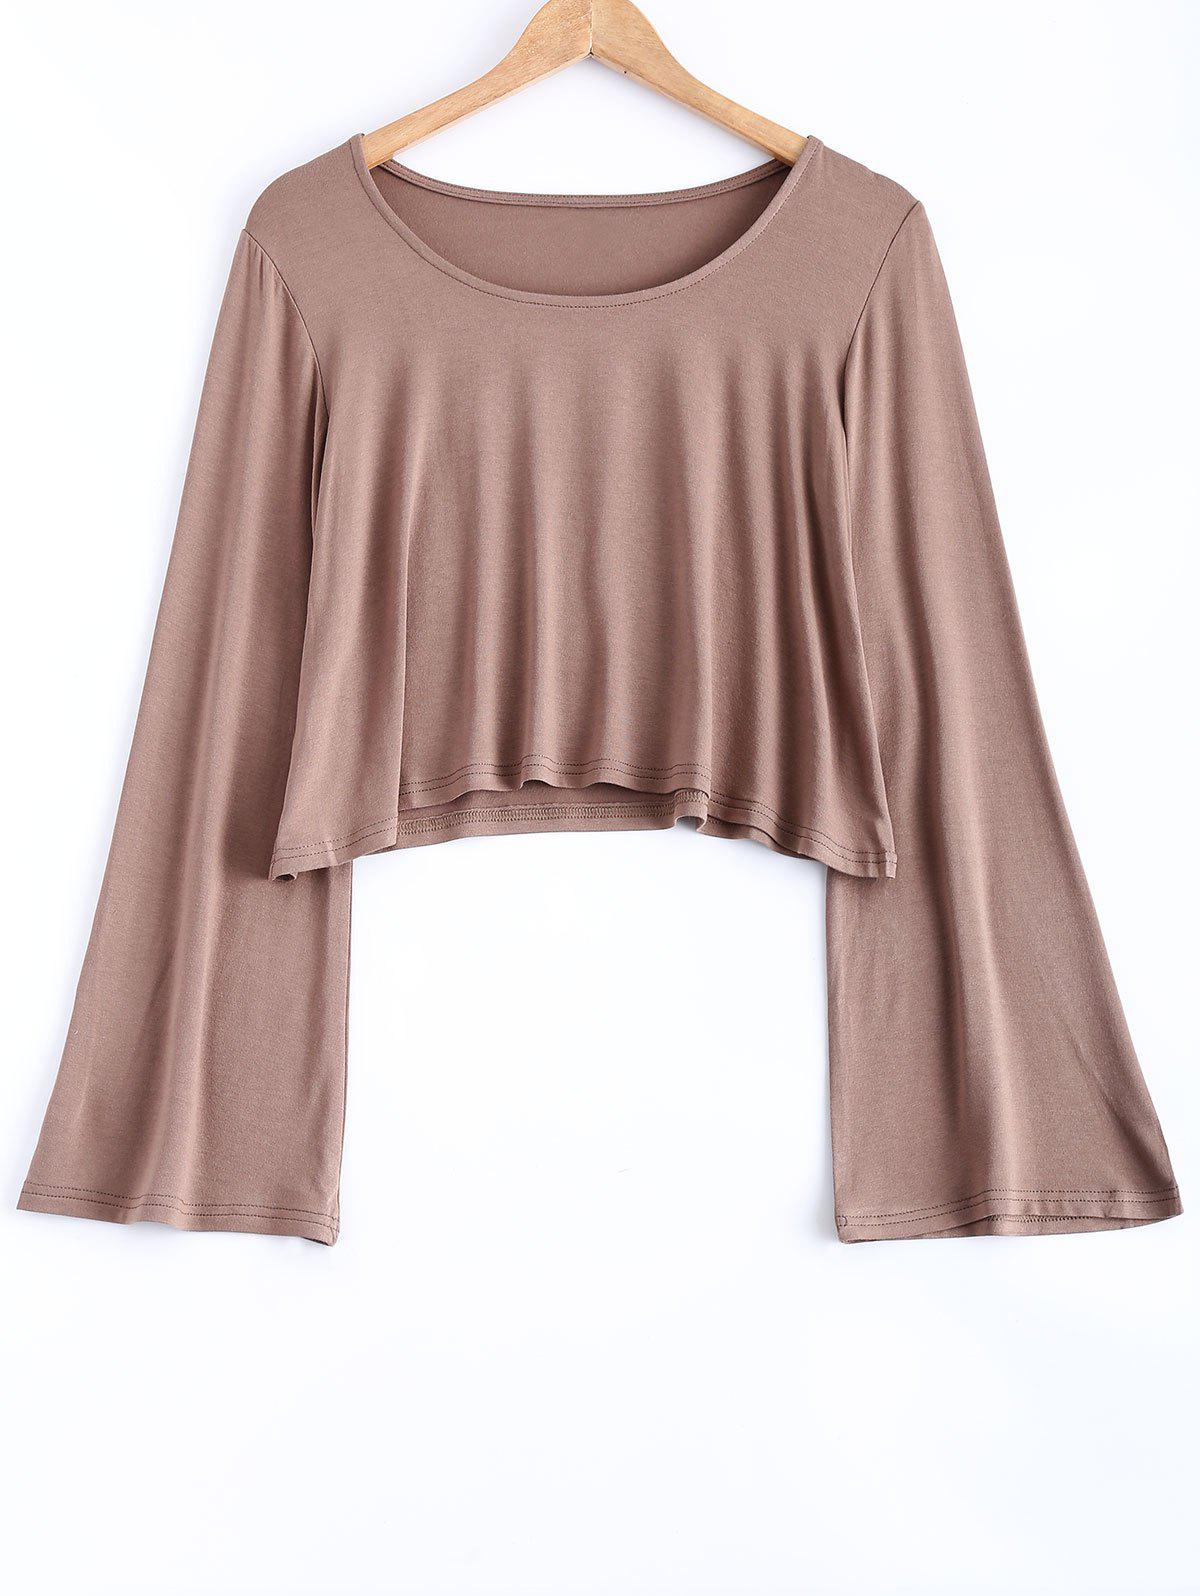 Manches Flare Casual Loose-Fit Crop Top - Camel M